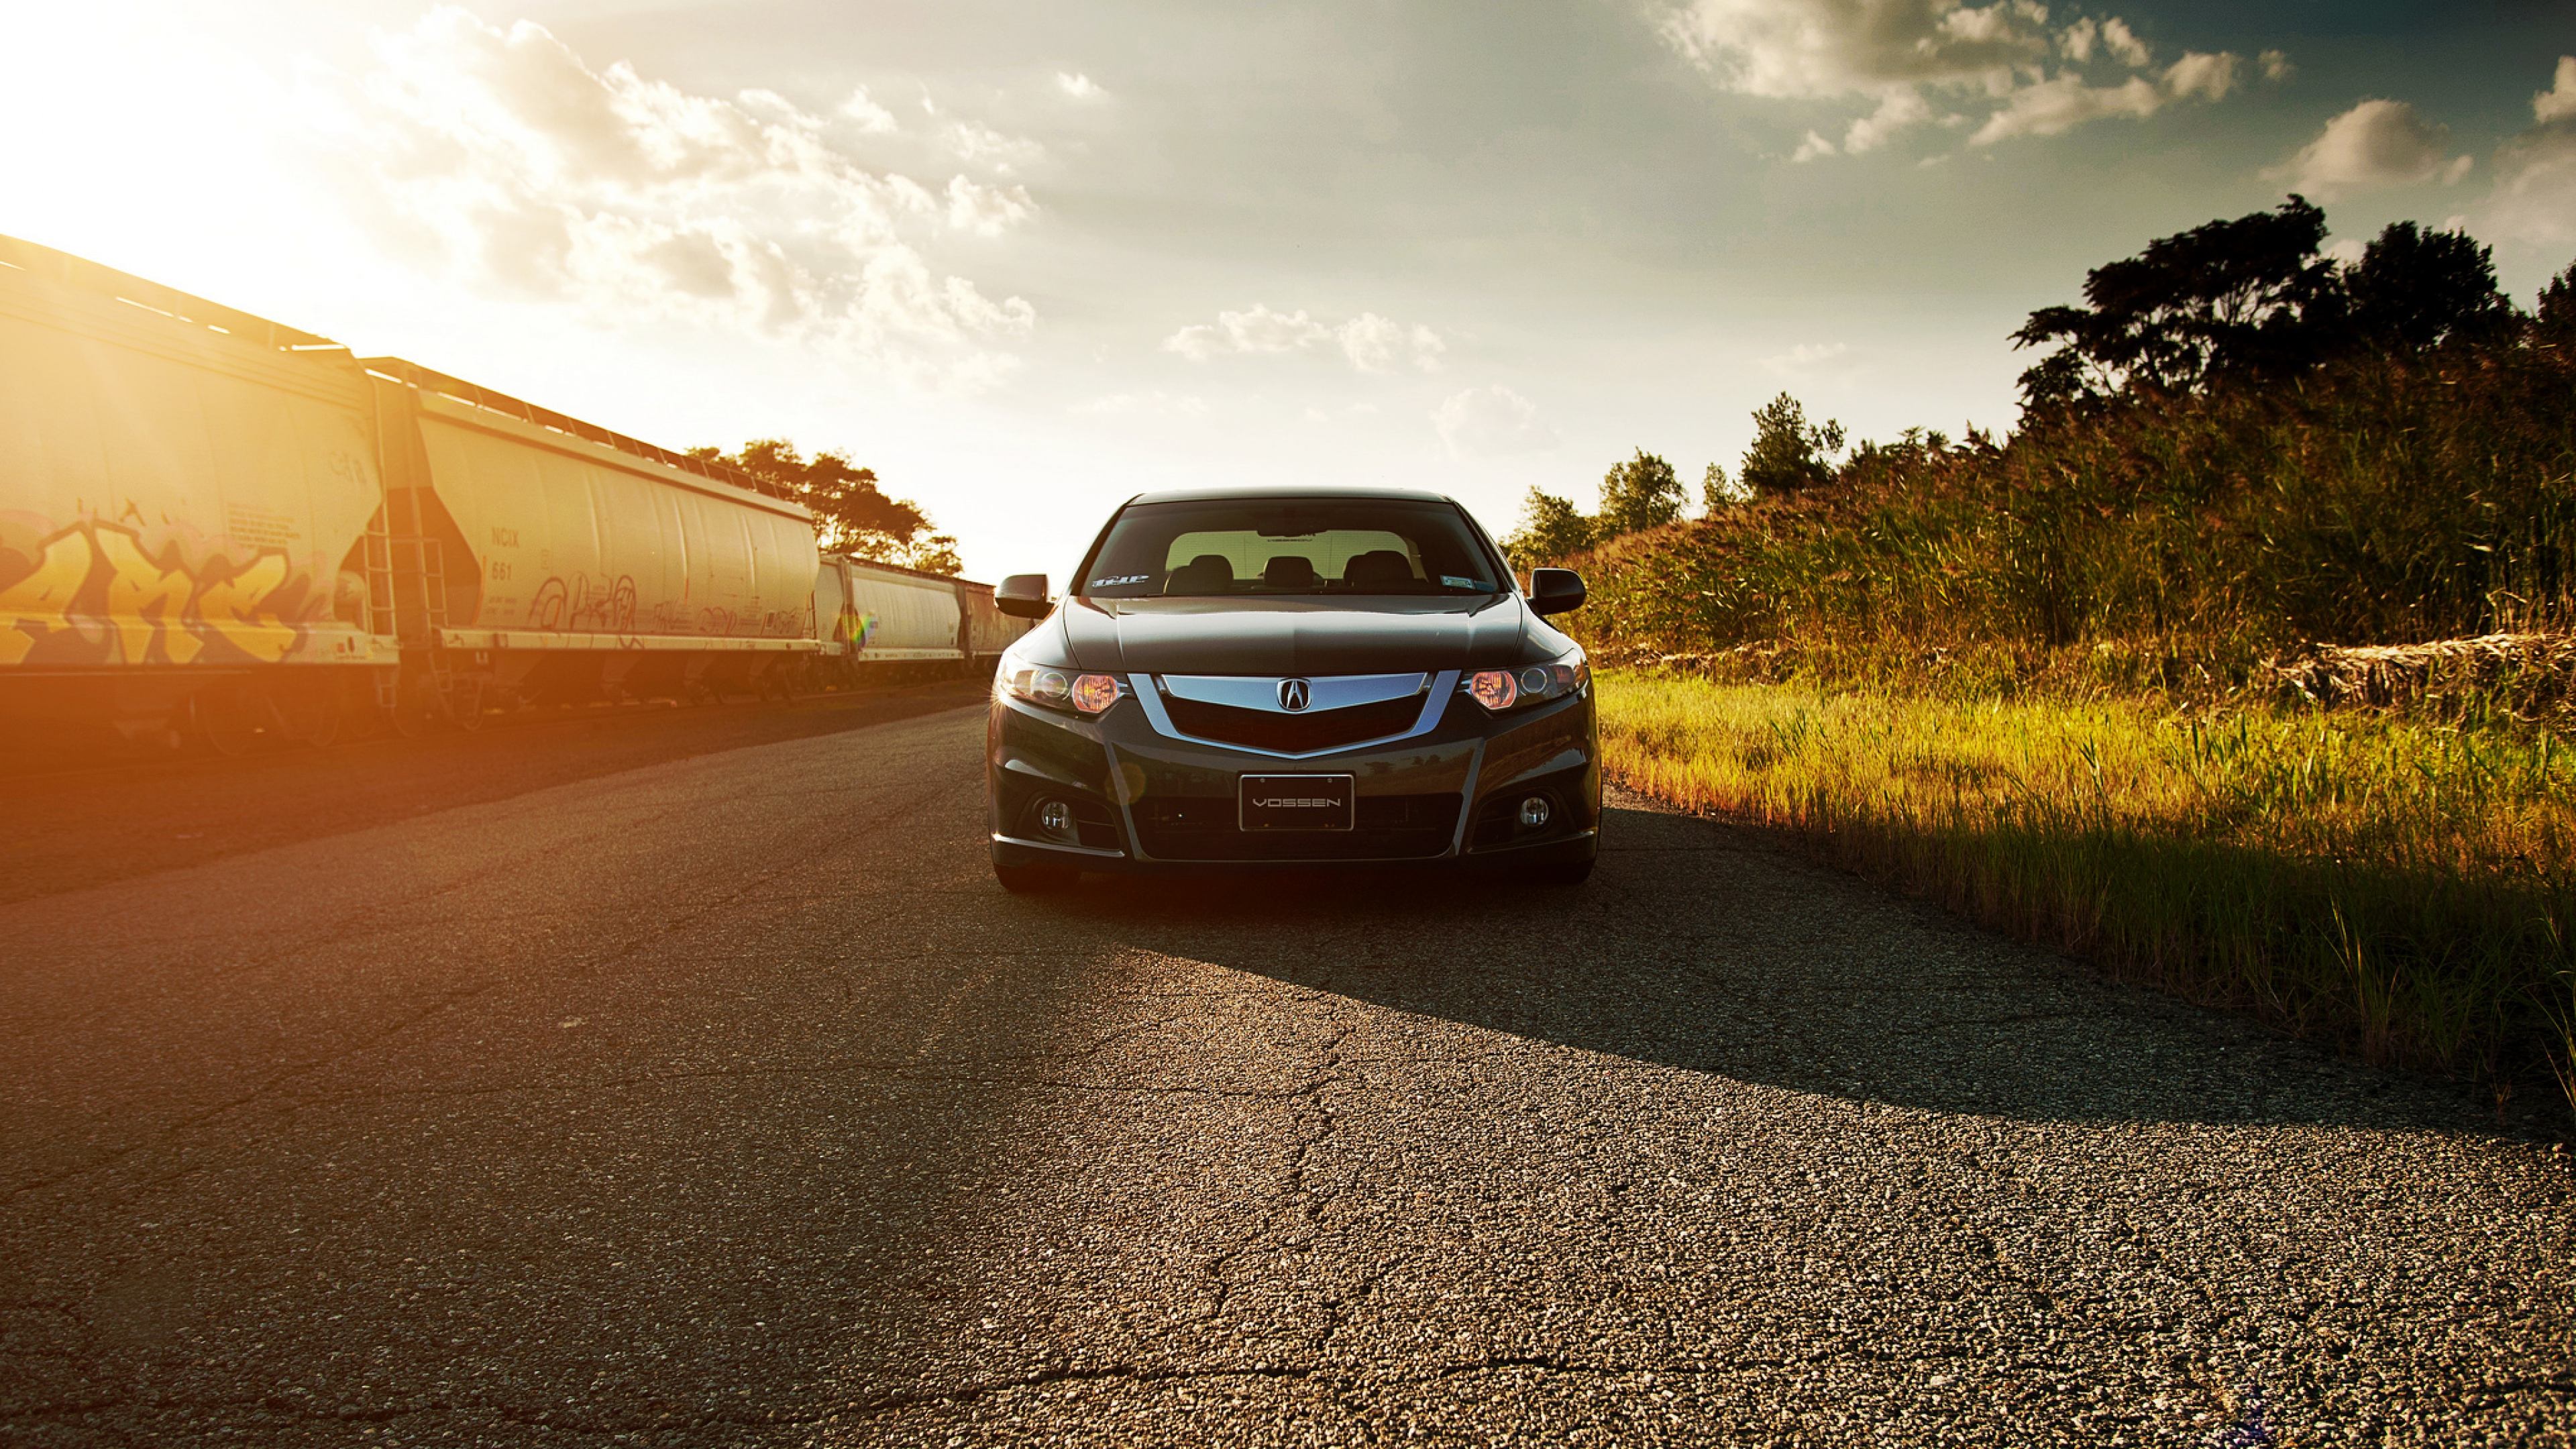 3840x2160 - Acura TSX Wallpapers 21